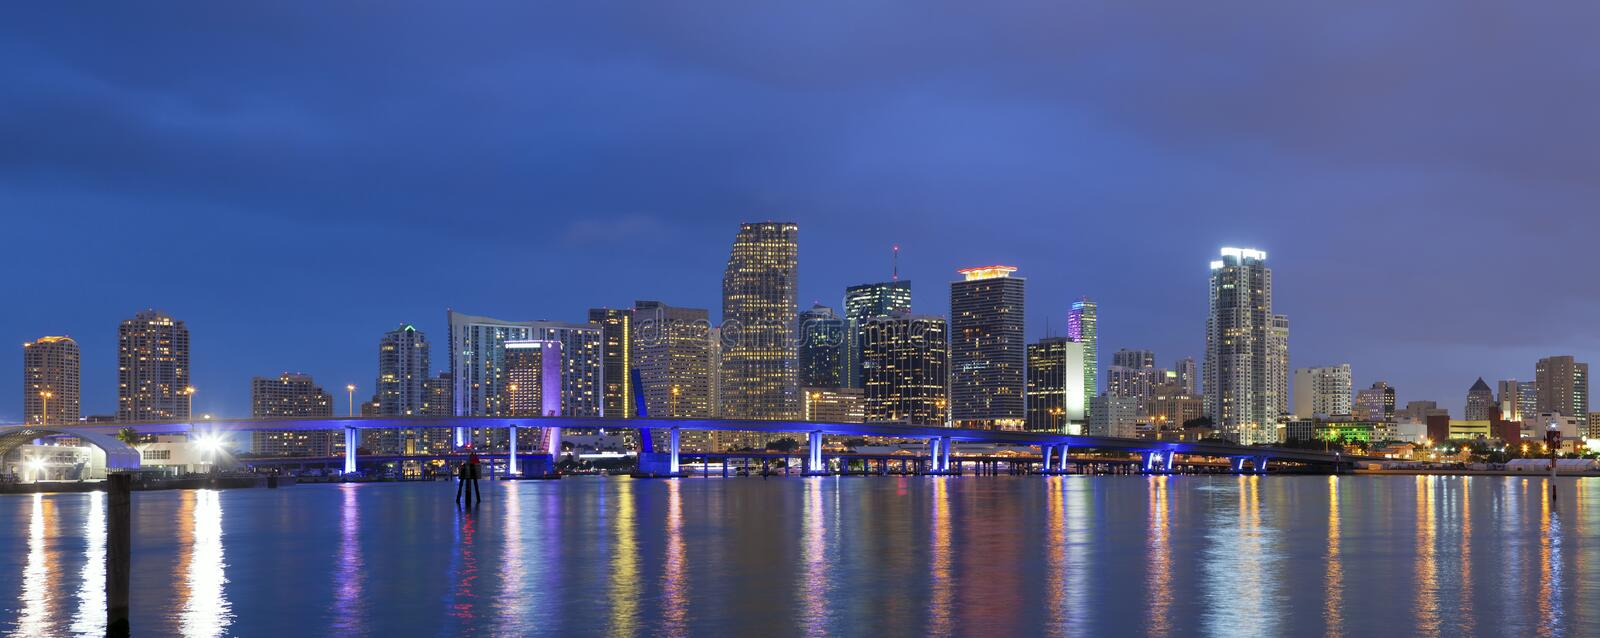 Download City of Miami. stock image. Image of building, reflection - 28799715